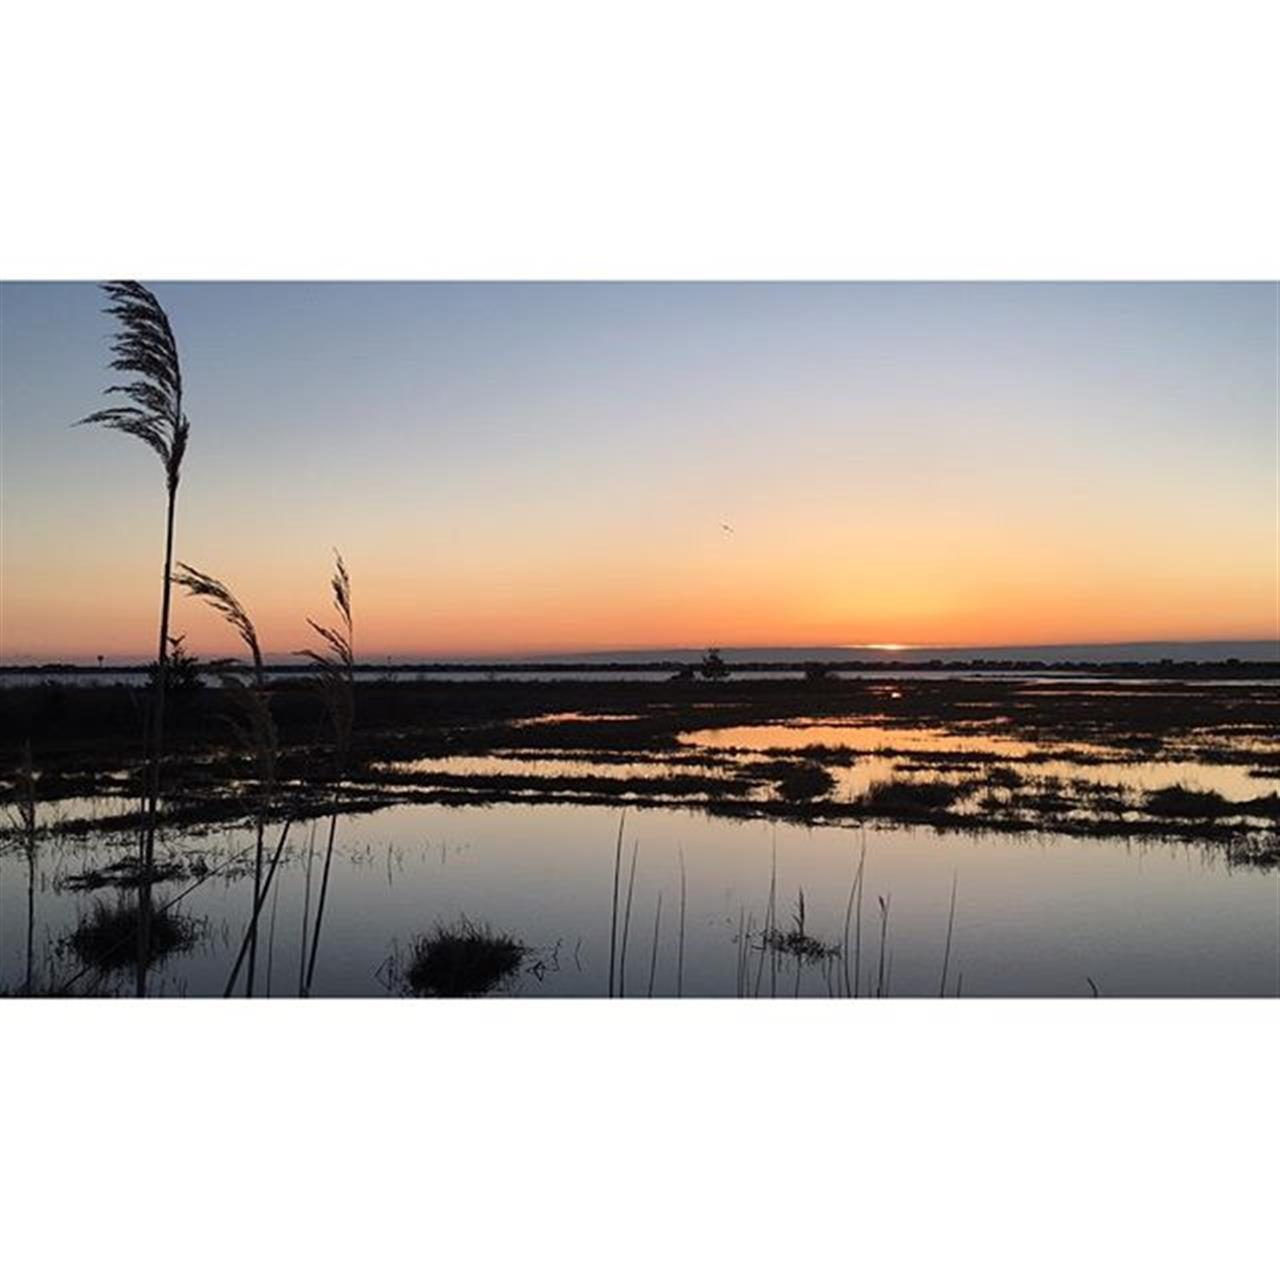 Sunrise of the marshes of Barnegat Bay, New Jersey